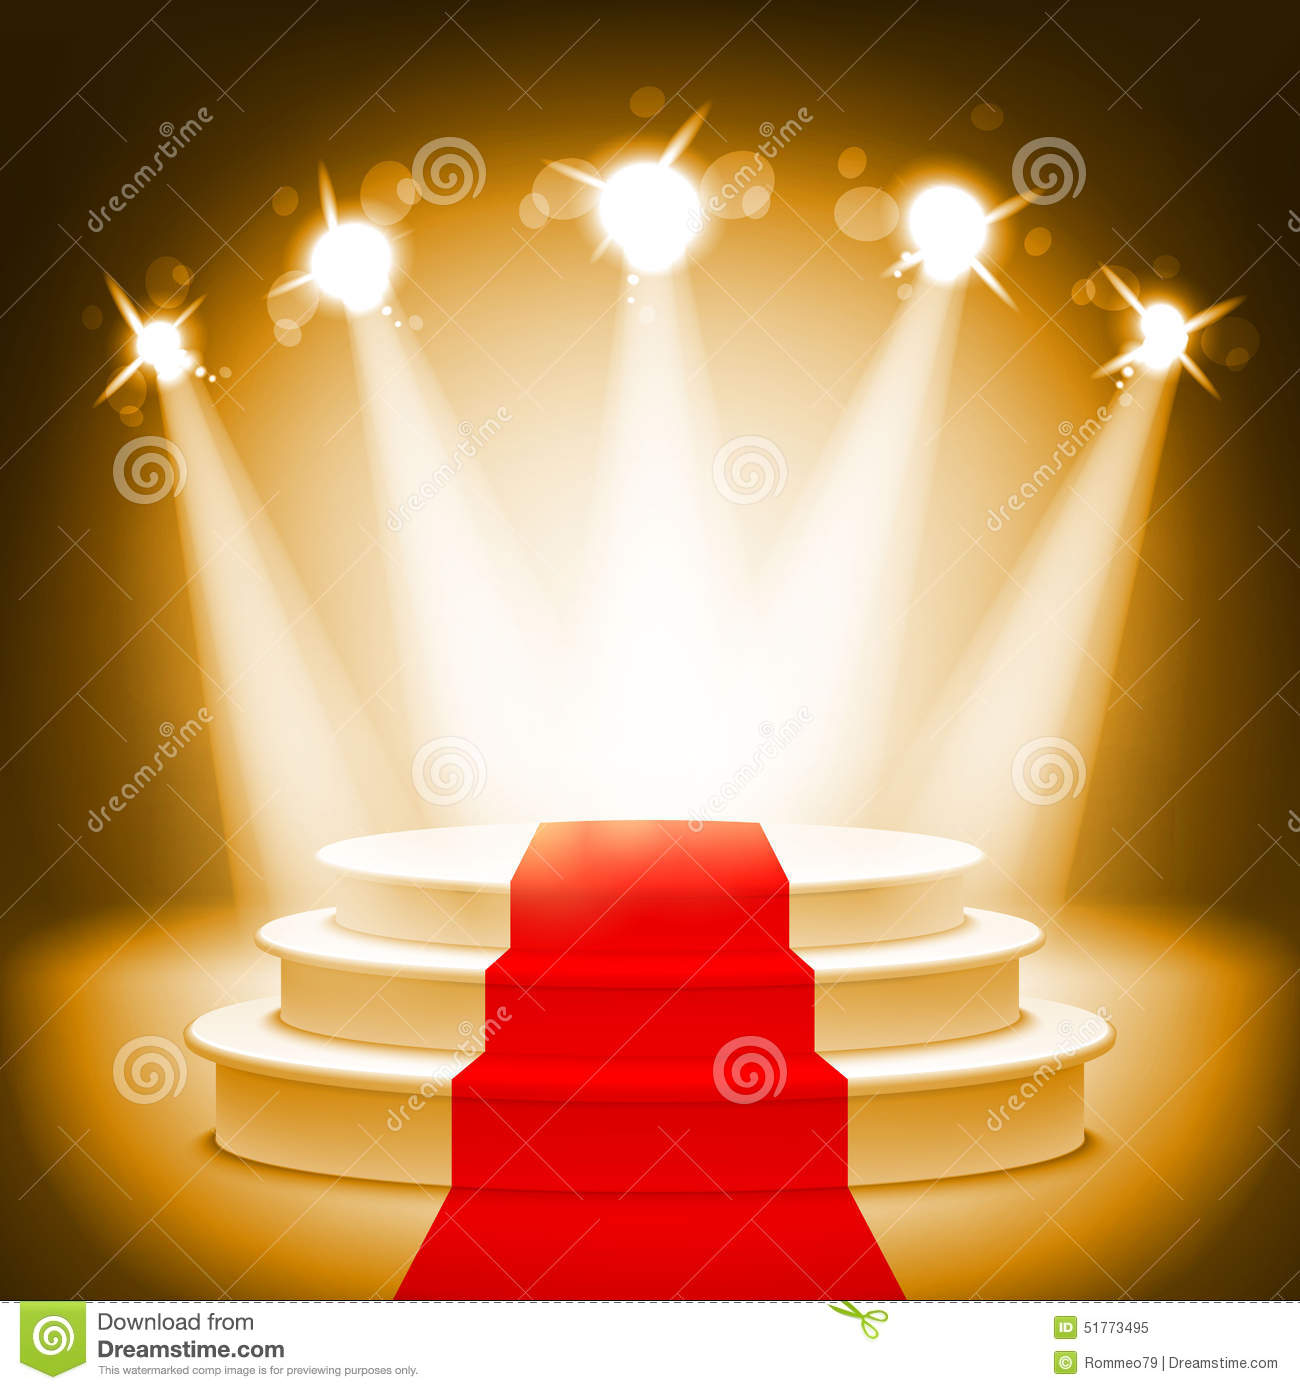 Forgot password additionally Stock Photography Vintage Ch ions Cup Image17932562 in addition Award 20background furthermore Illustration Of Trophy Icon On White Background Vector 2367001 also Red Carpet 03. on award ceremony background